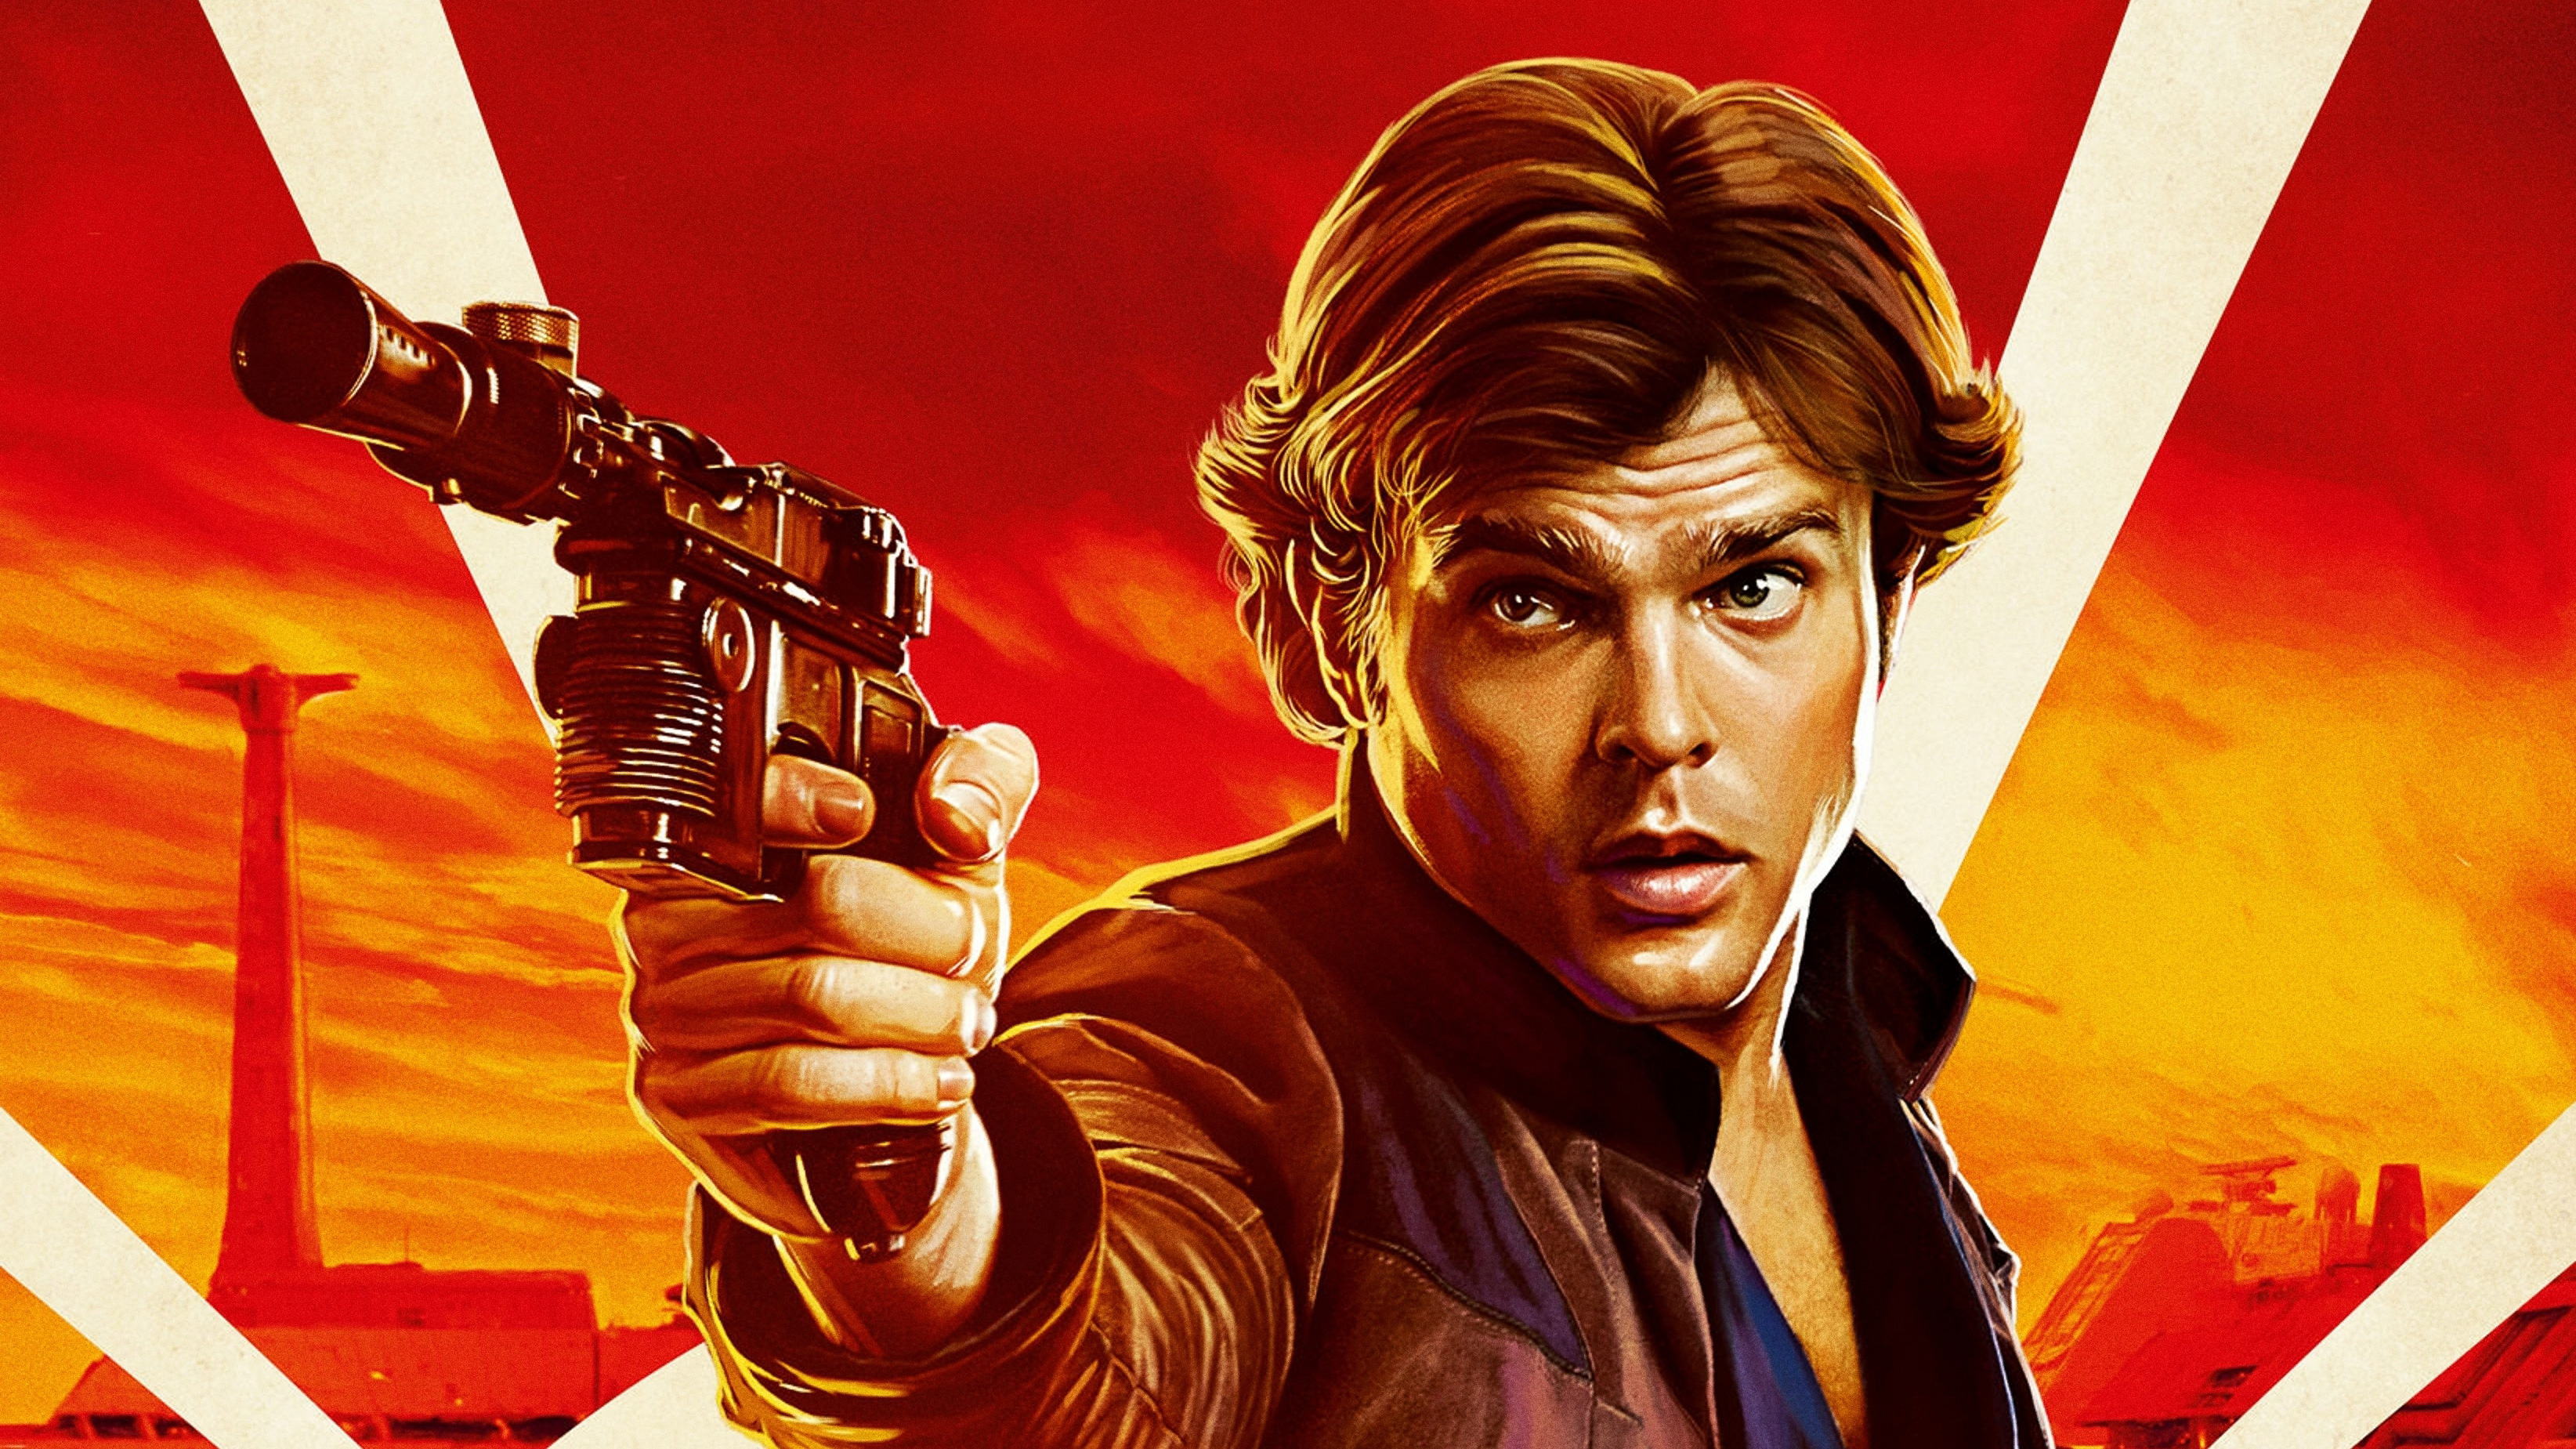 Han Solo In Solo A Star Wars Story Movie - Solo A Star Wars Story , HD Wallpaper & Backgrounds